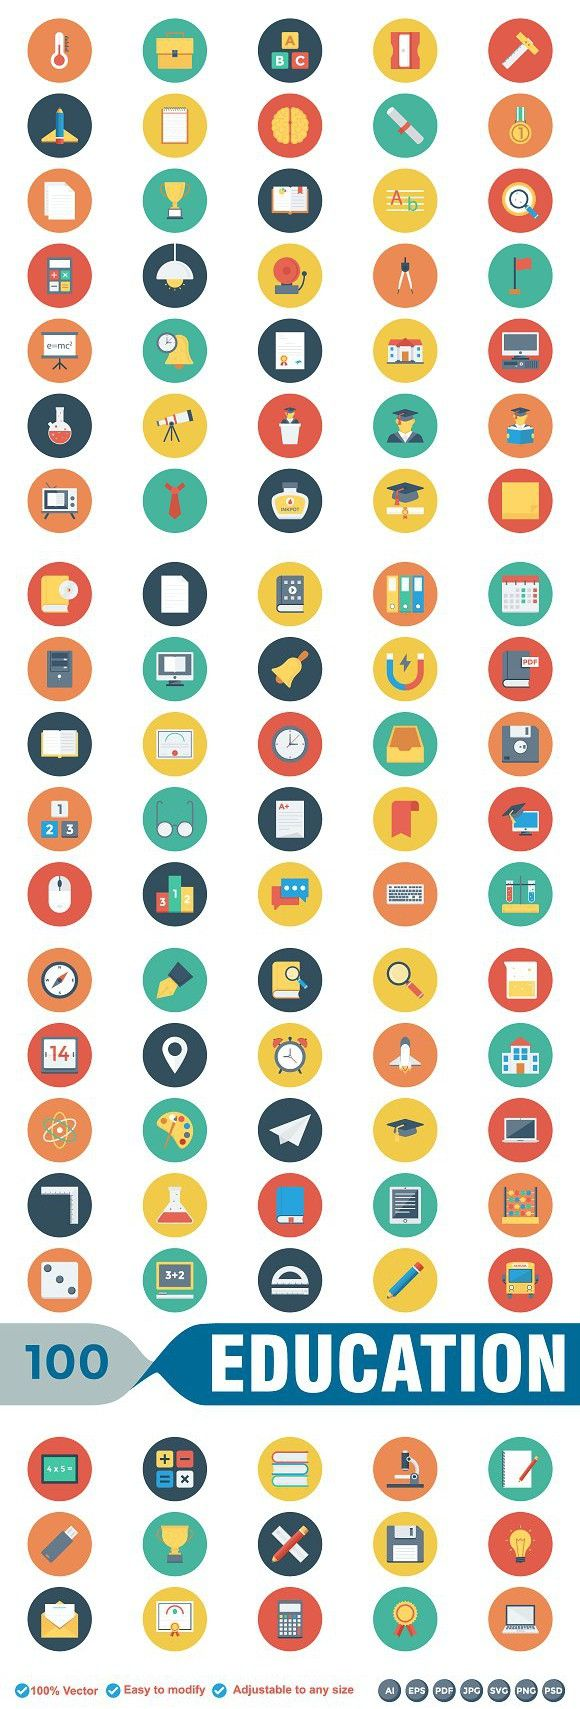 Educational Flat Circle Icons. Student #onlineeducation